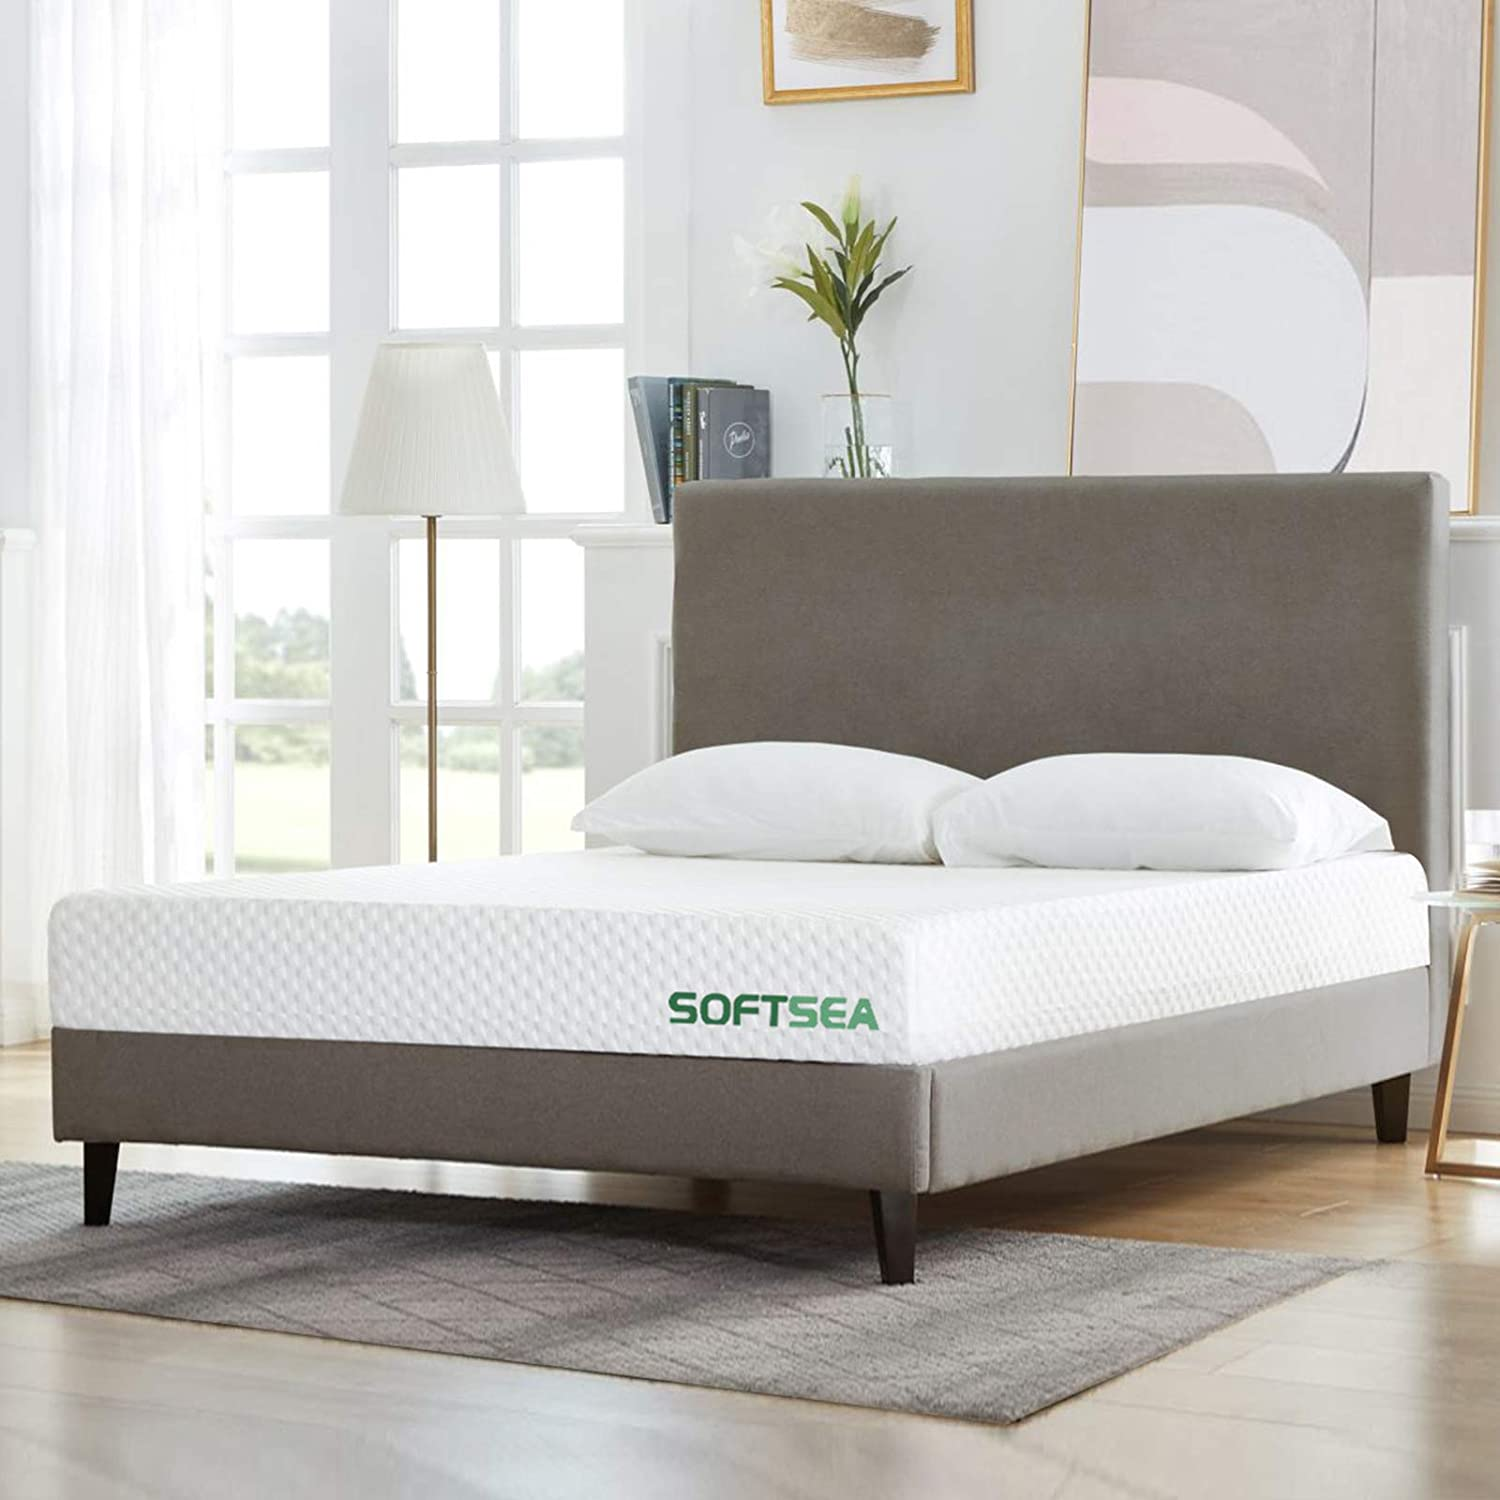 Full Size Mattress, SOFTSEA 6 inch Cooling-Gel Memory Foam Mattress in a Box for a Medium Comfort, Breathable Bed Mattress with CertiPUR-US Certified Foam, No Set-up, Easy Assembly, 10 Year Warranty